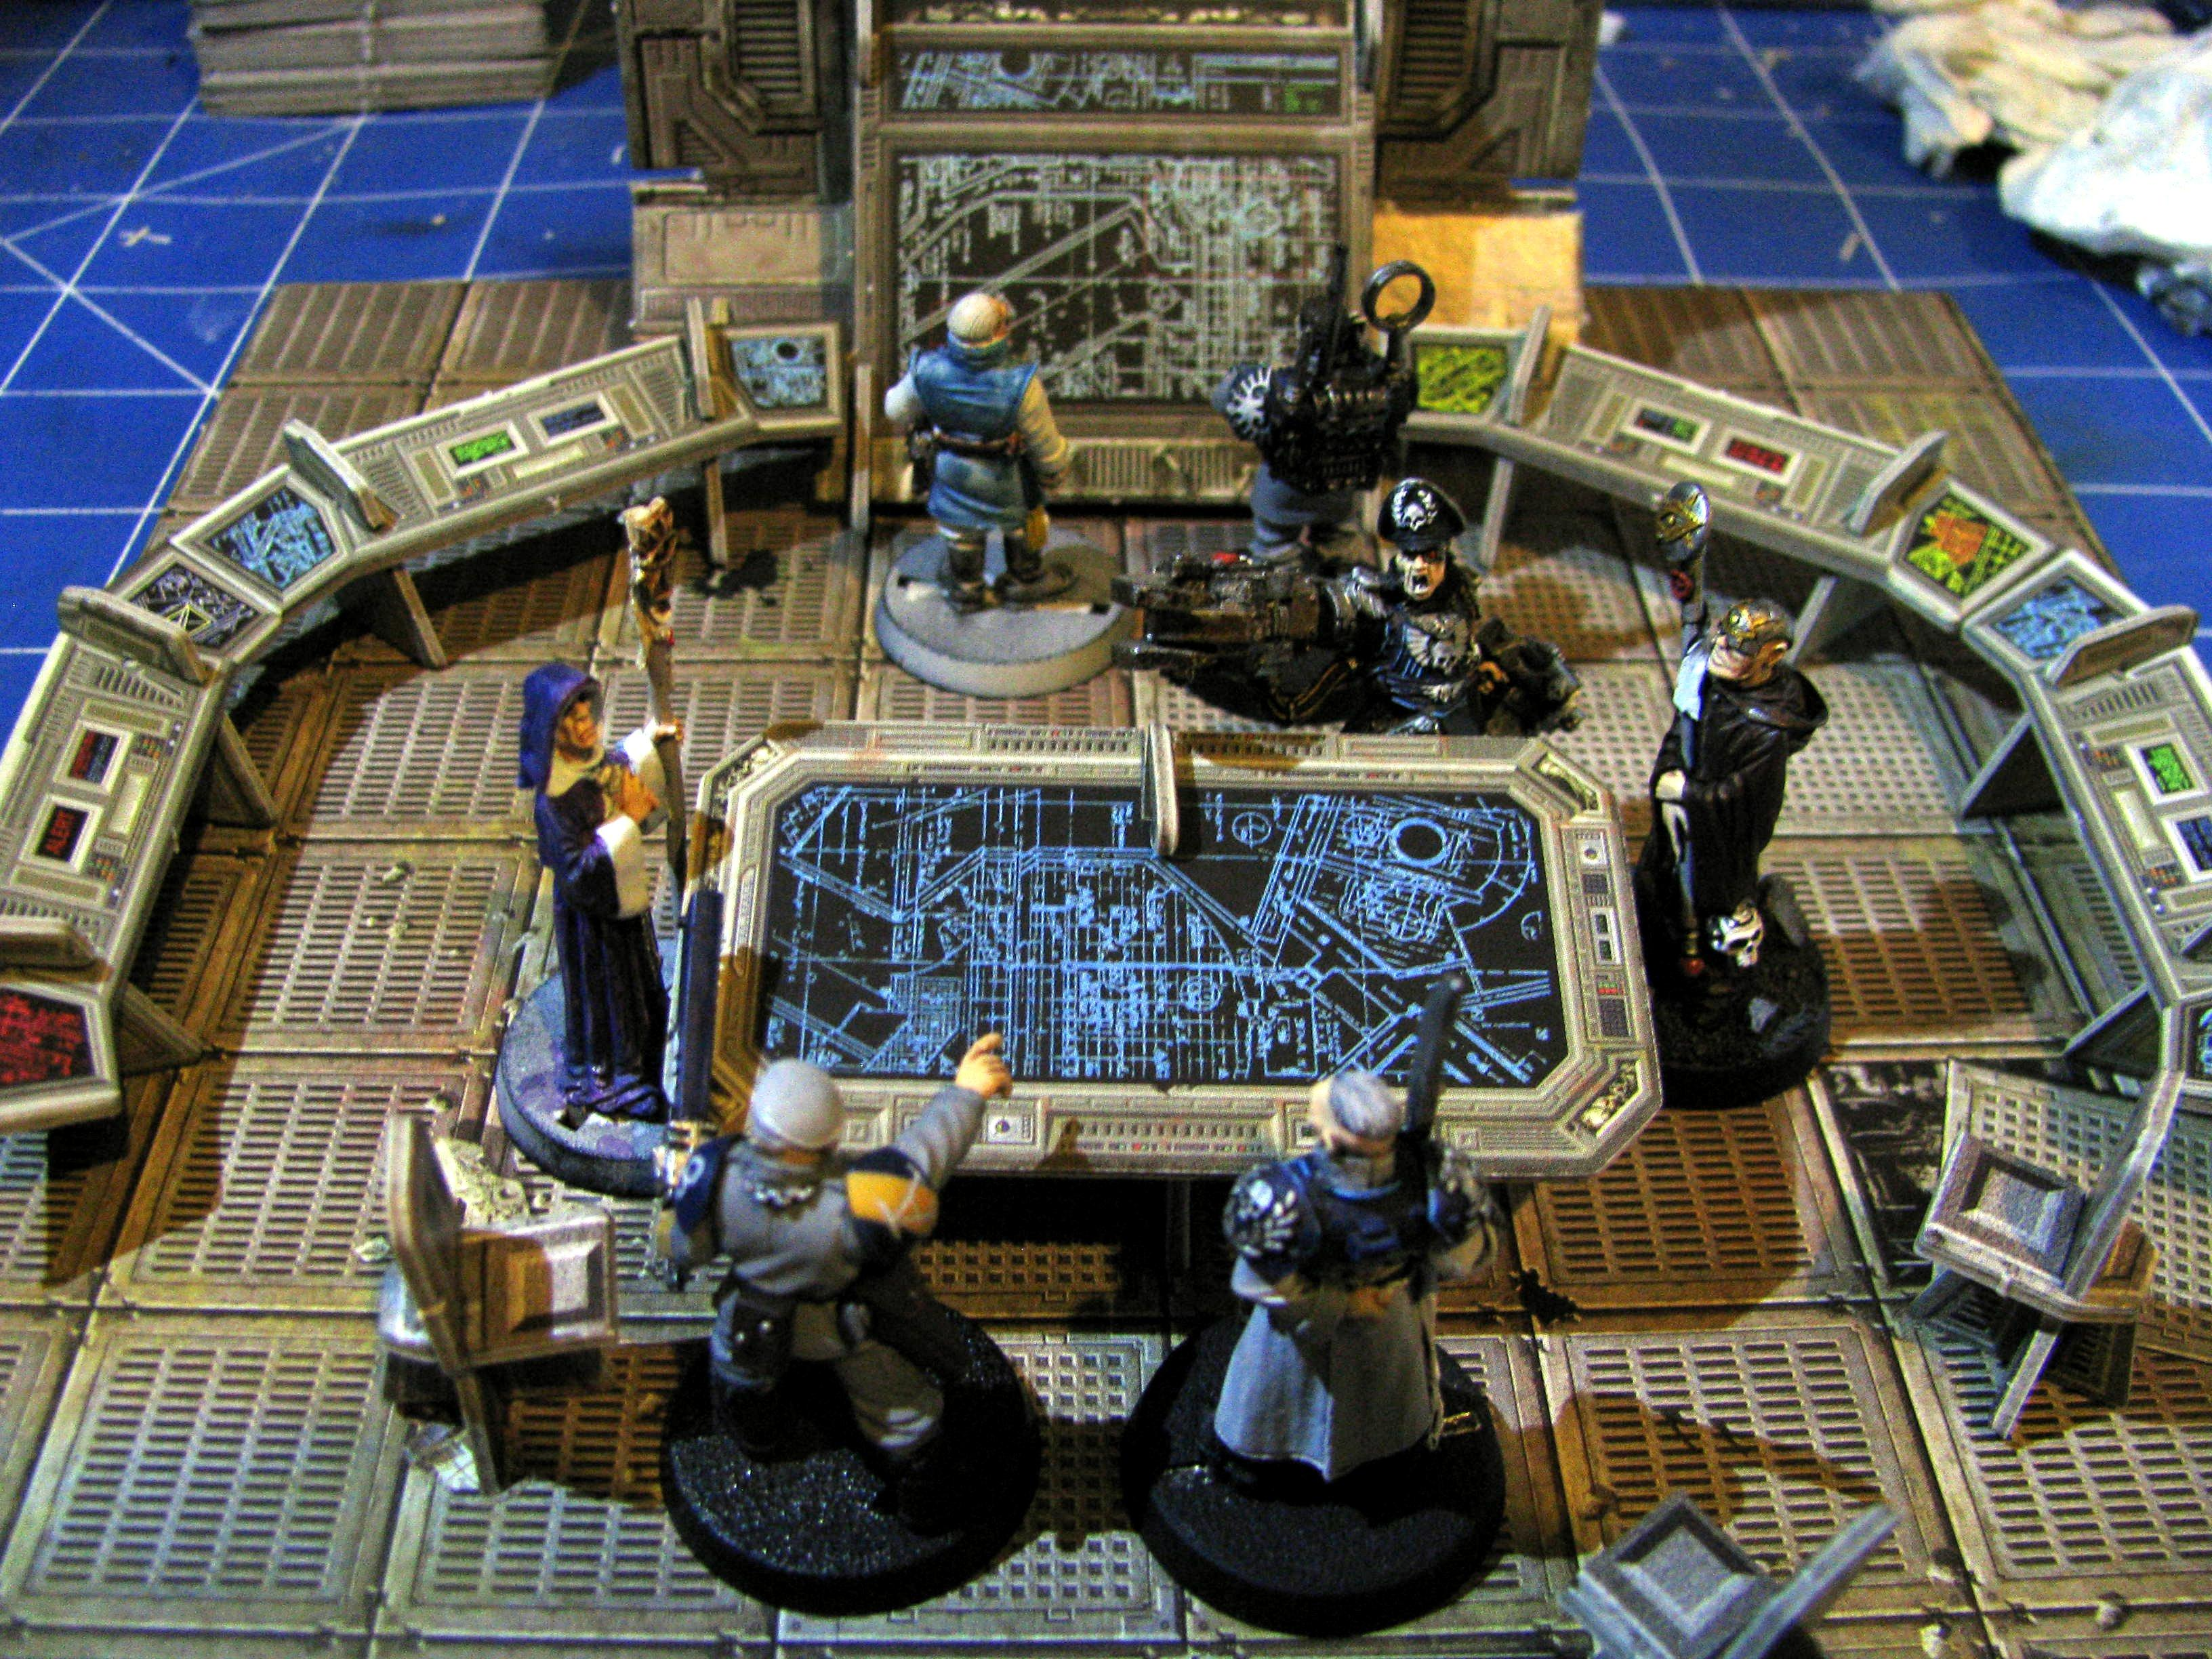 Control Room, Council, Diorama, Imperial Guard, Officers